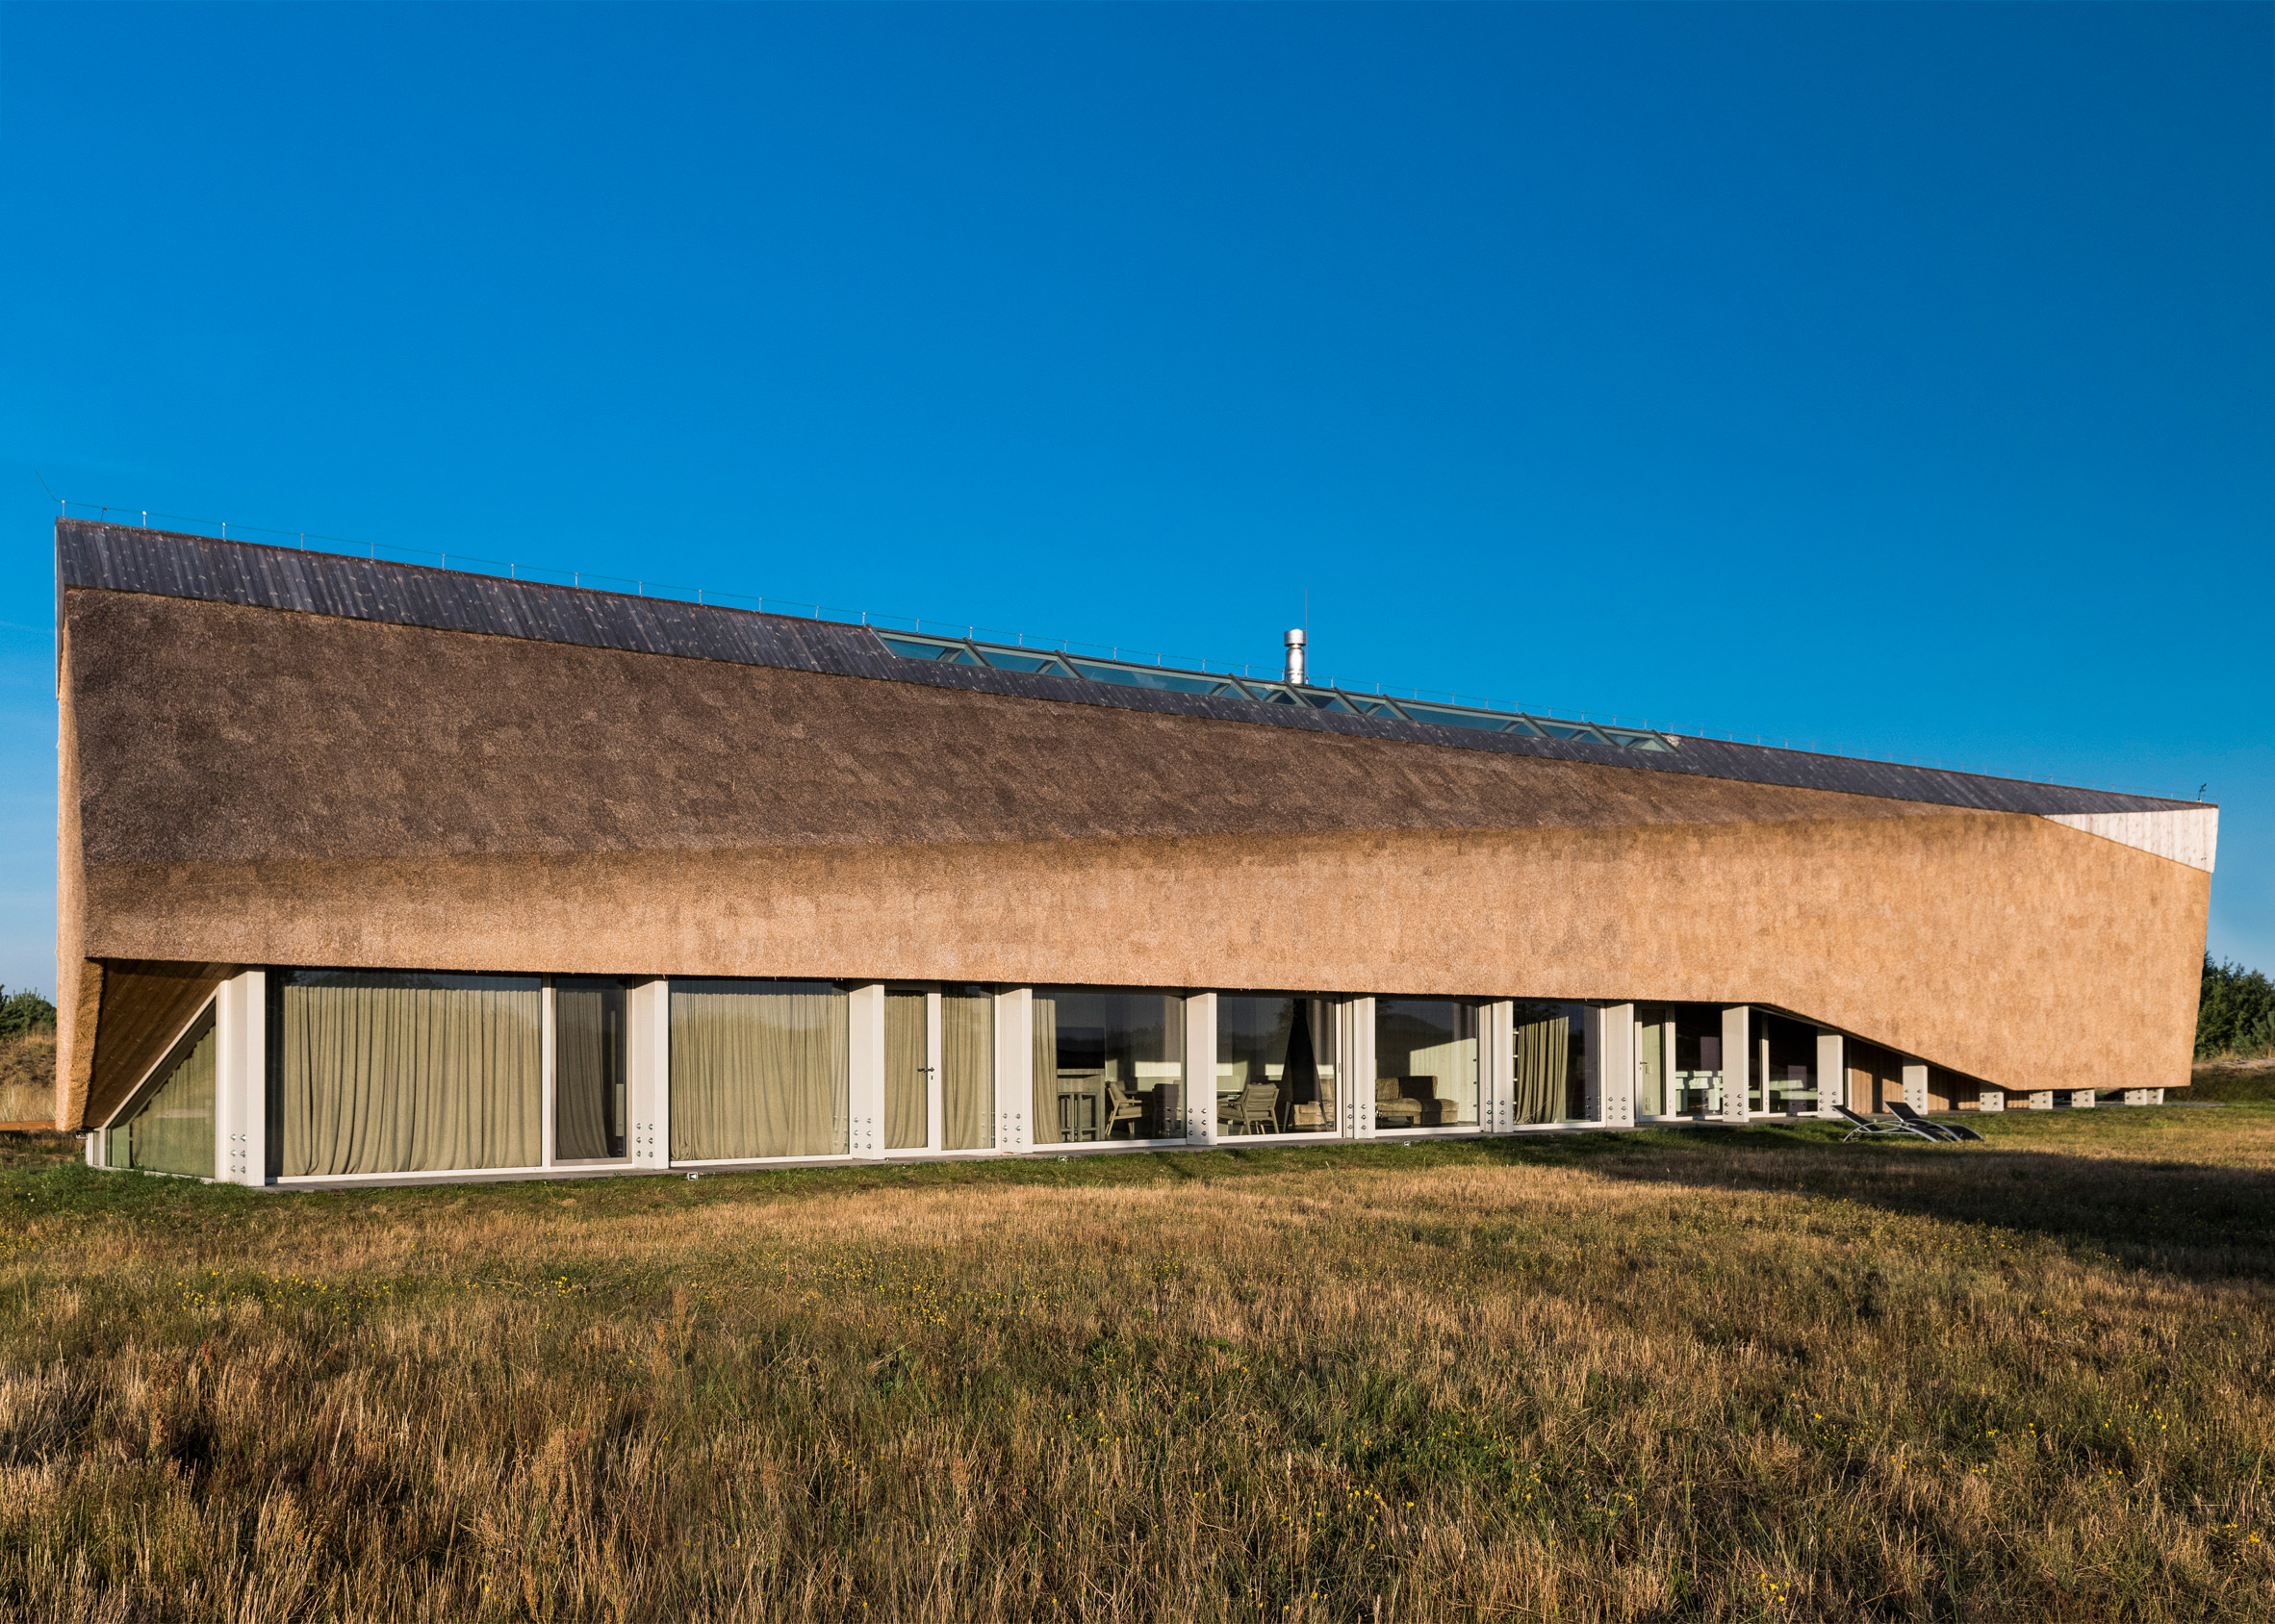 The Dune House by Archispektras